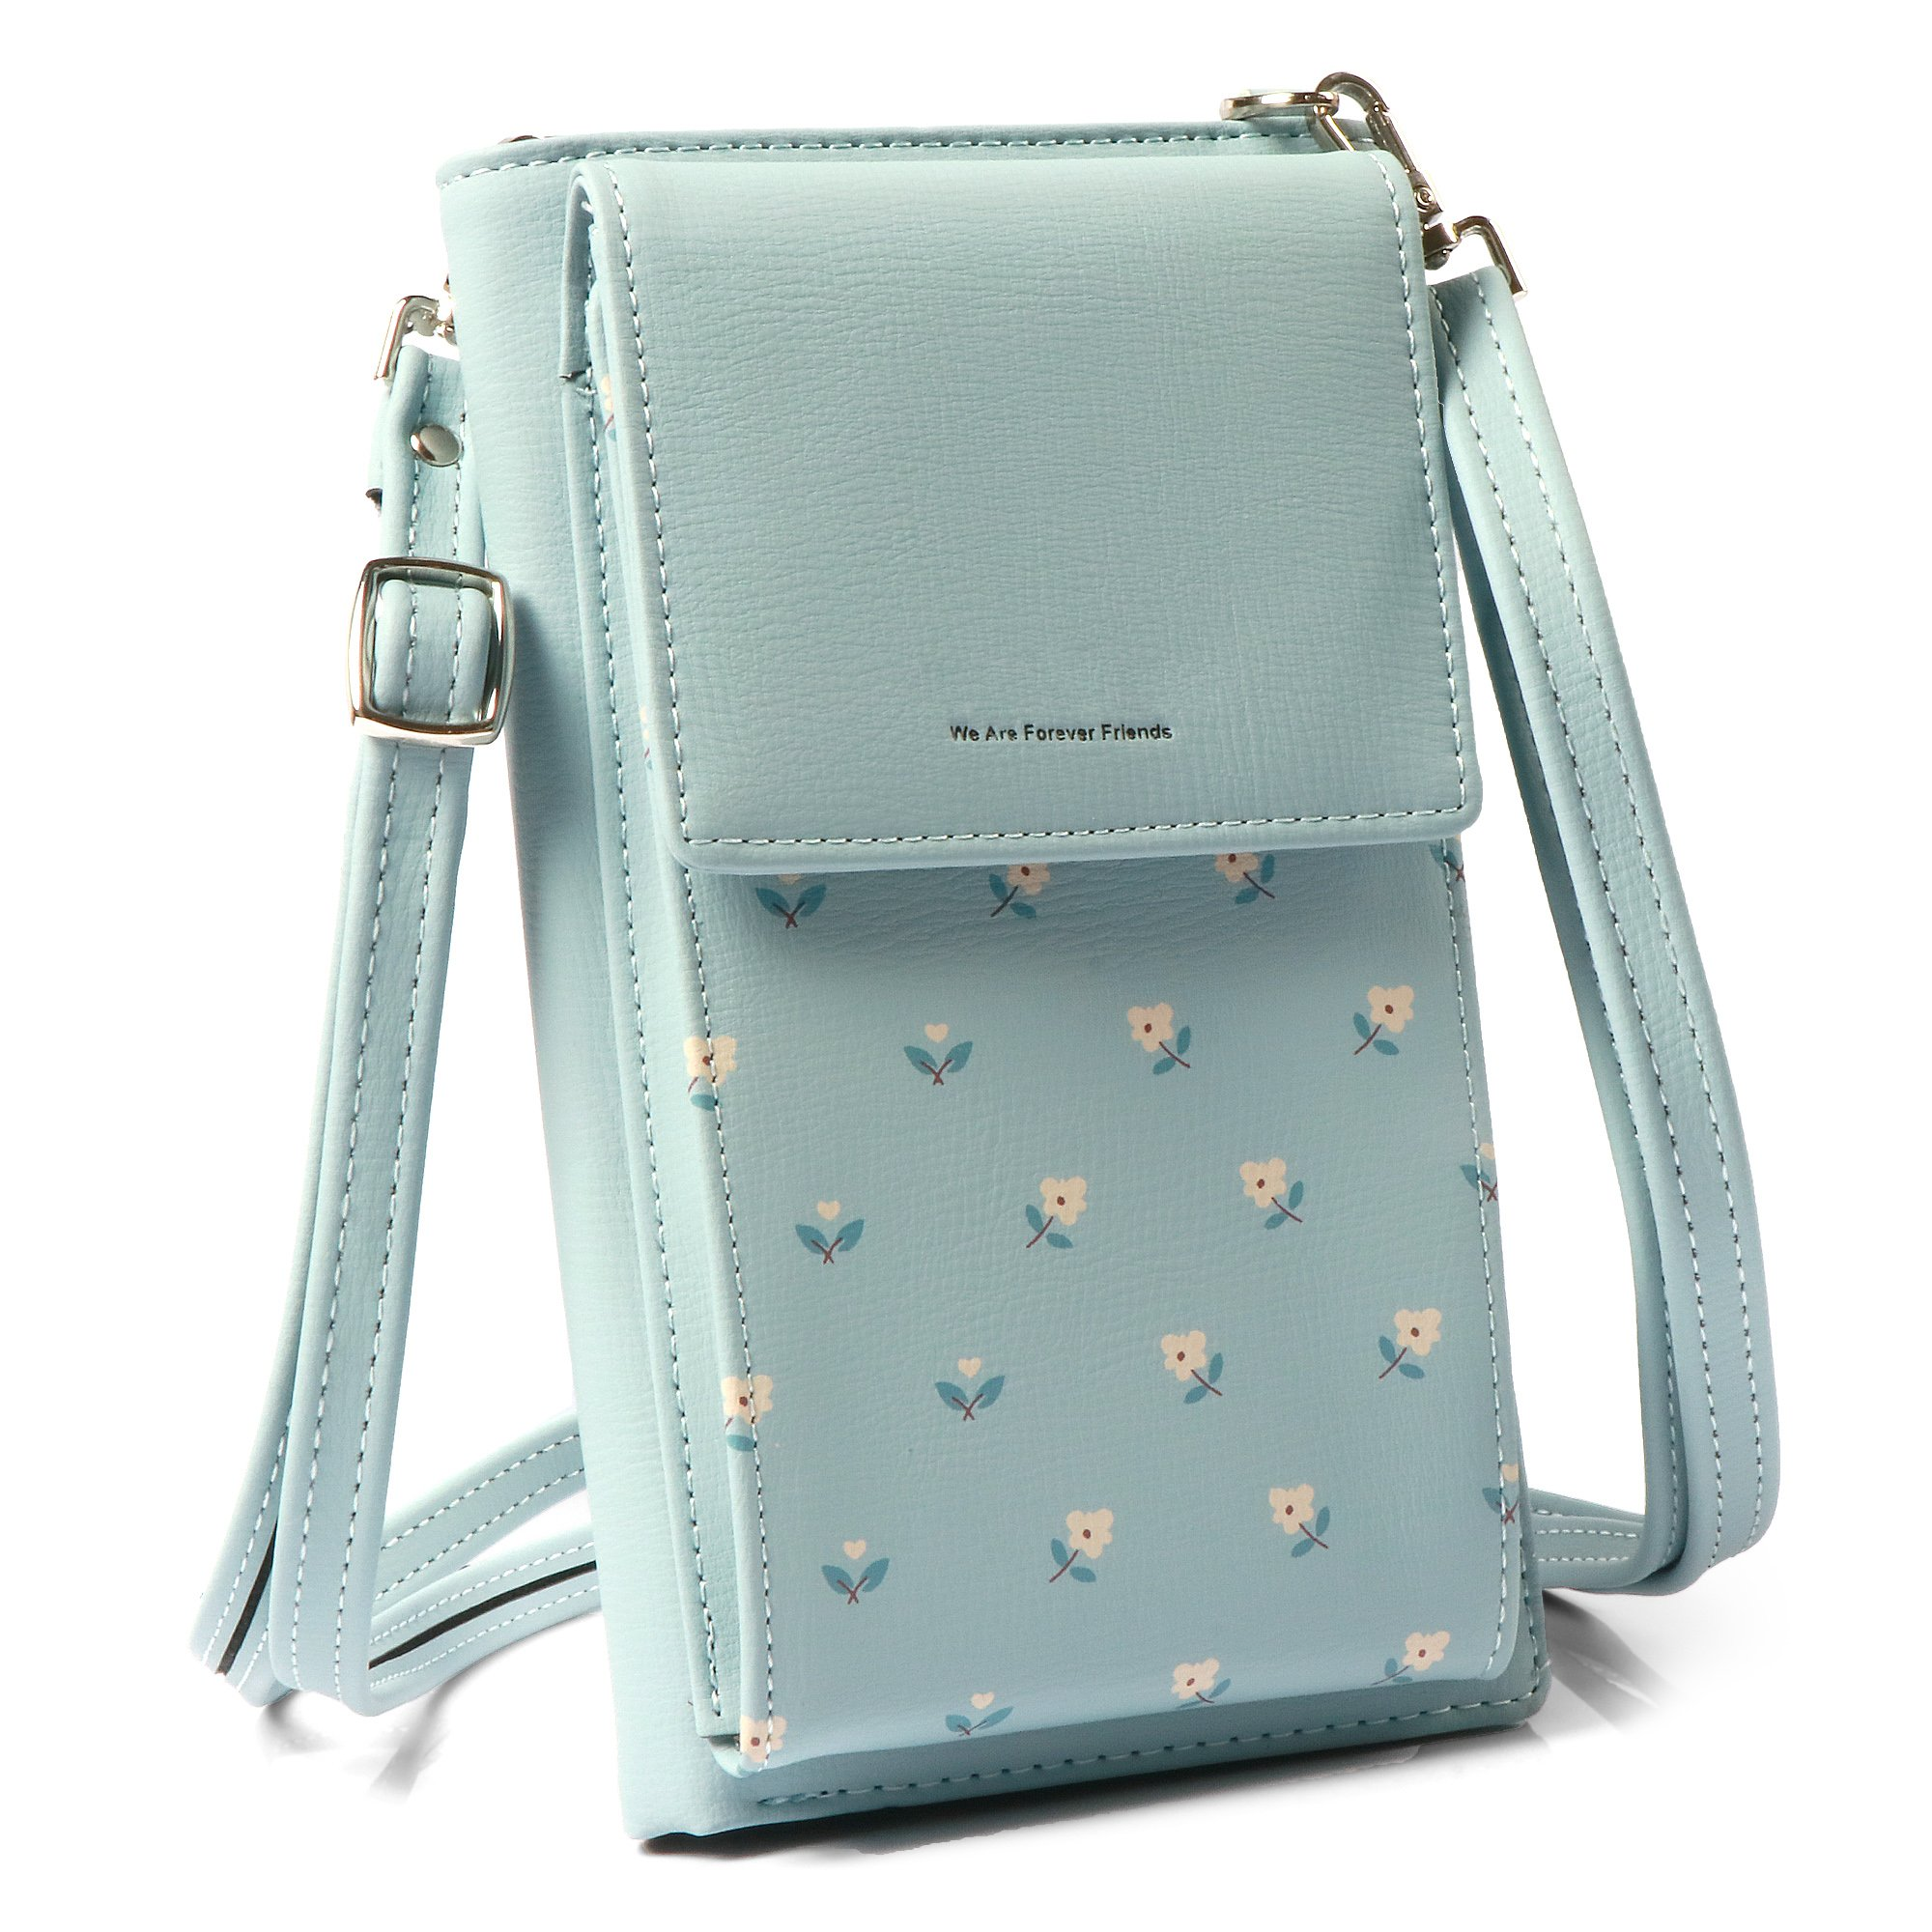 Small Crossbody Bag women Cellphone Purse Card Holder Wallet Cell Phone Pouch with Shoulder Strap (Blue)